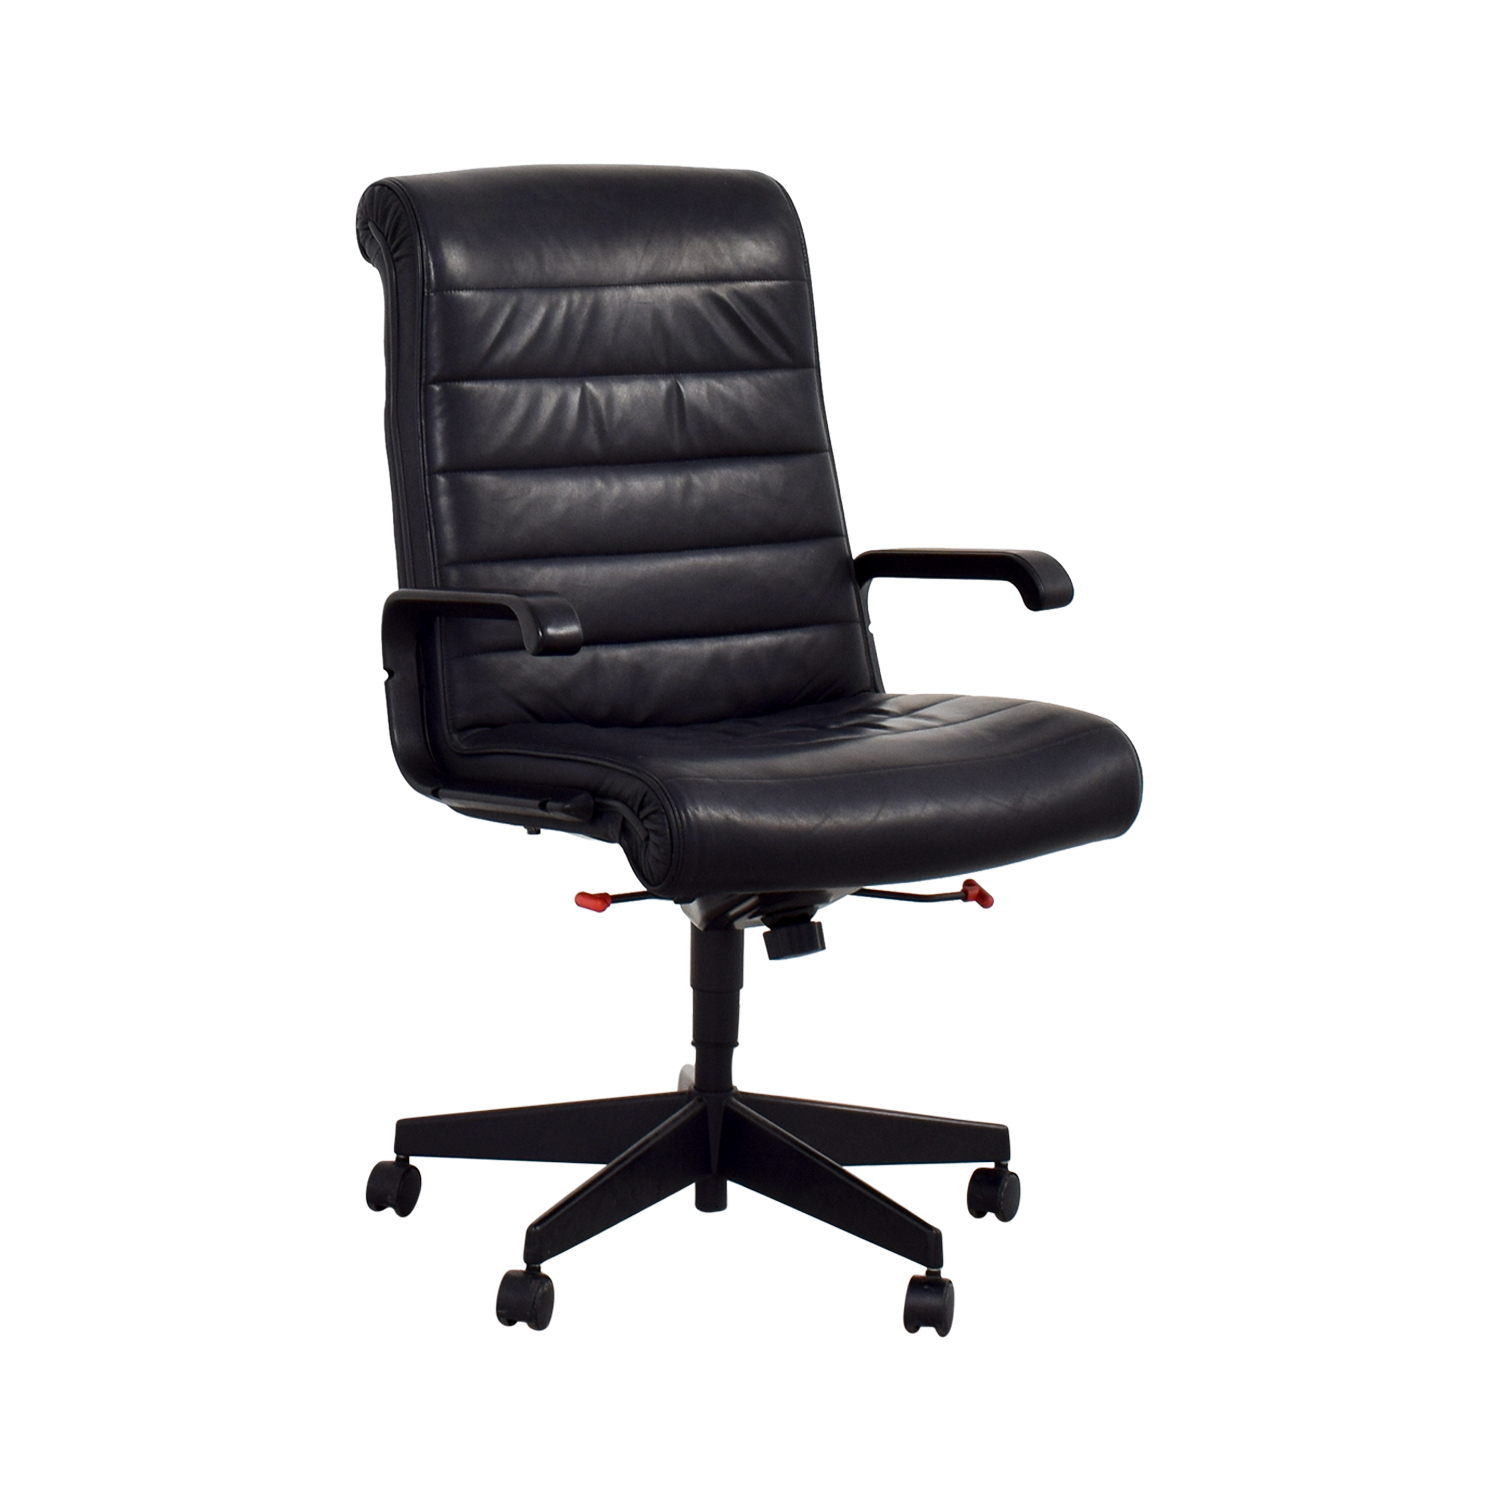 Furniture Chairs Black 90 Off Black Leather Office Chair Chairs